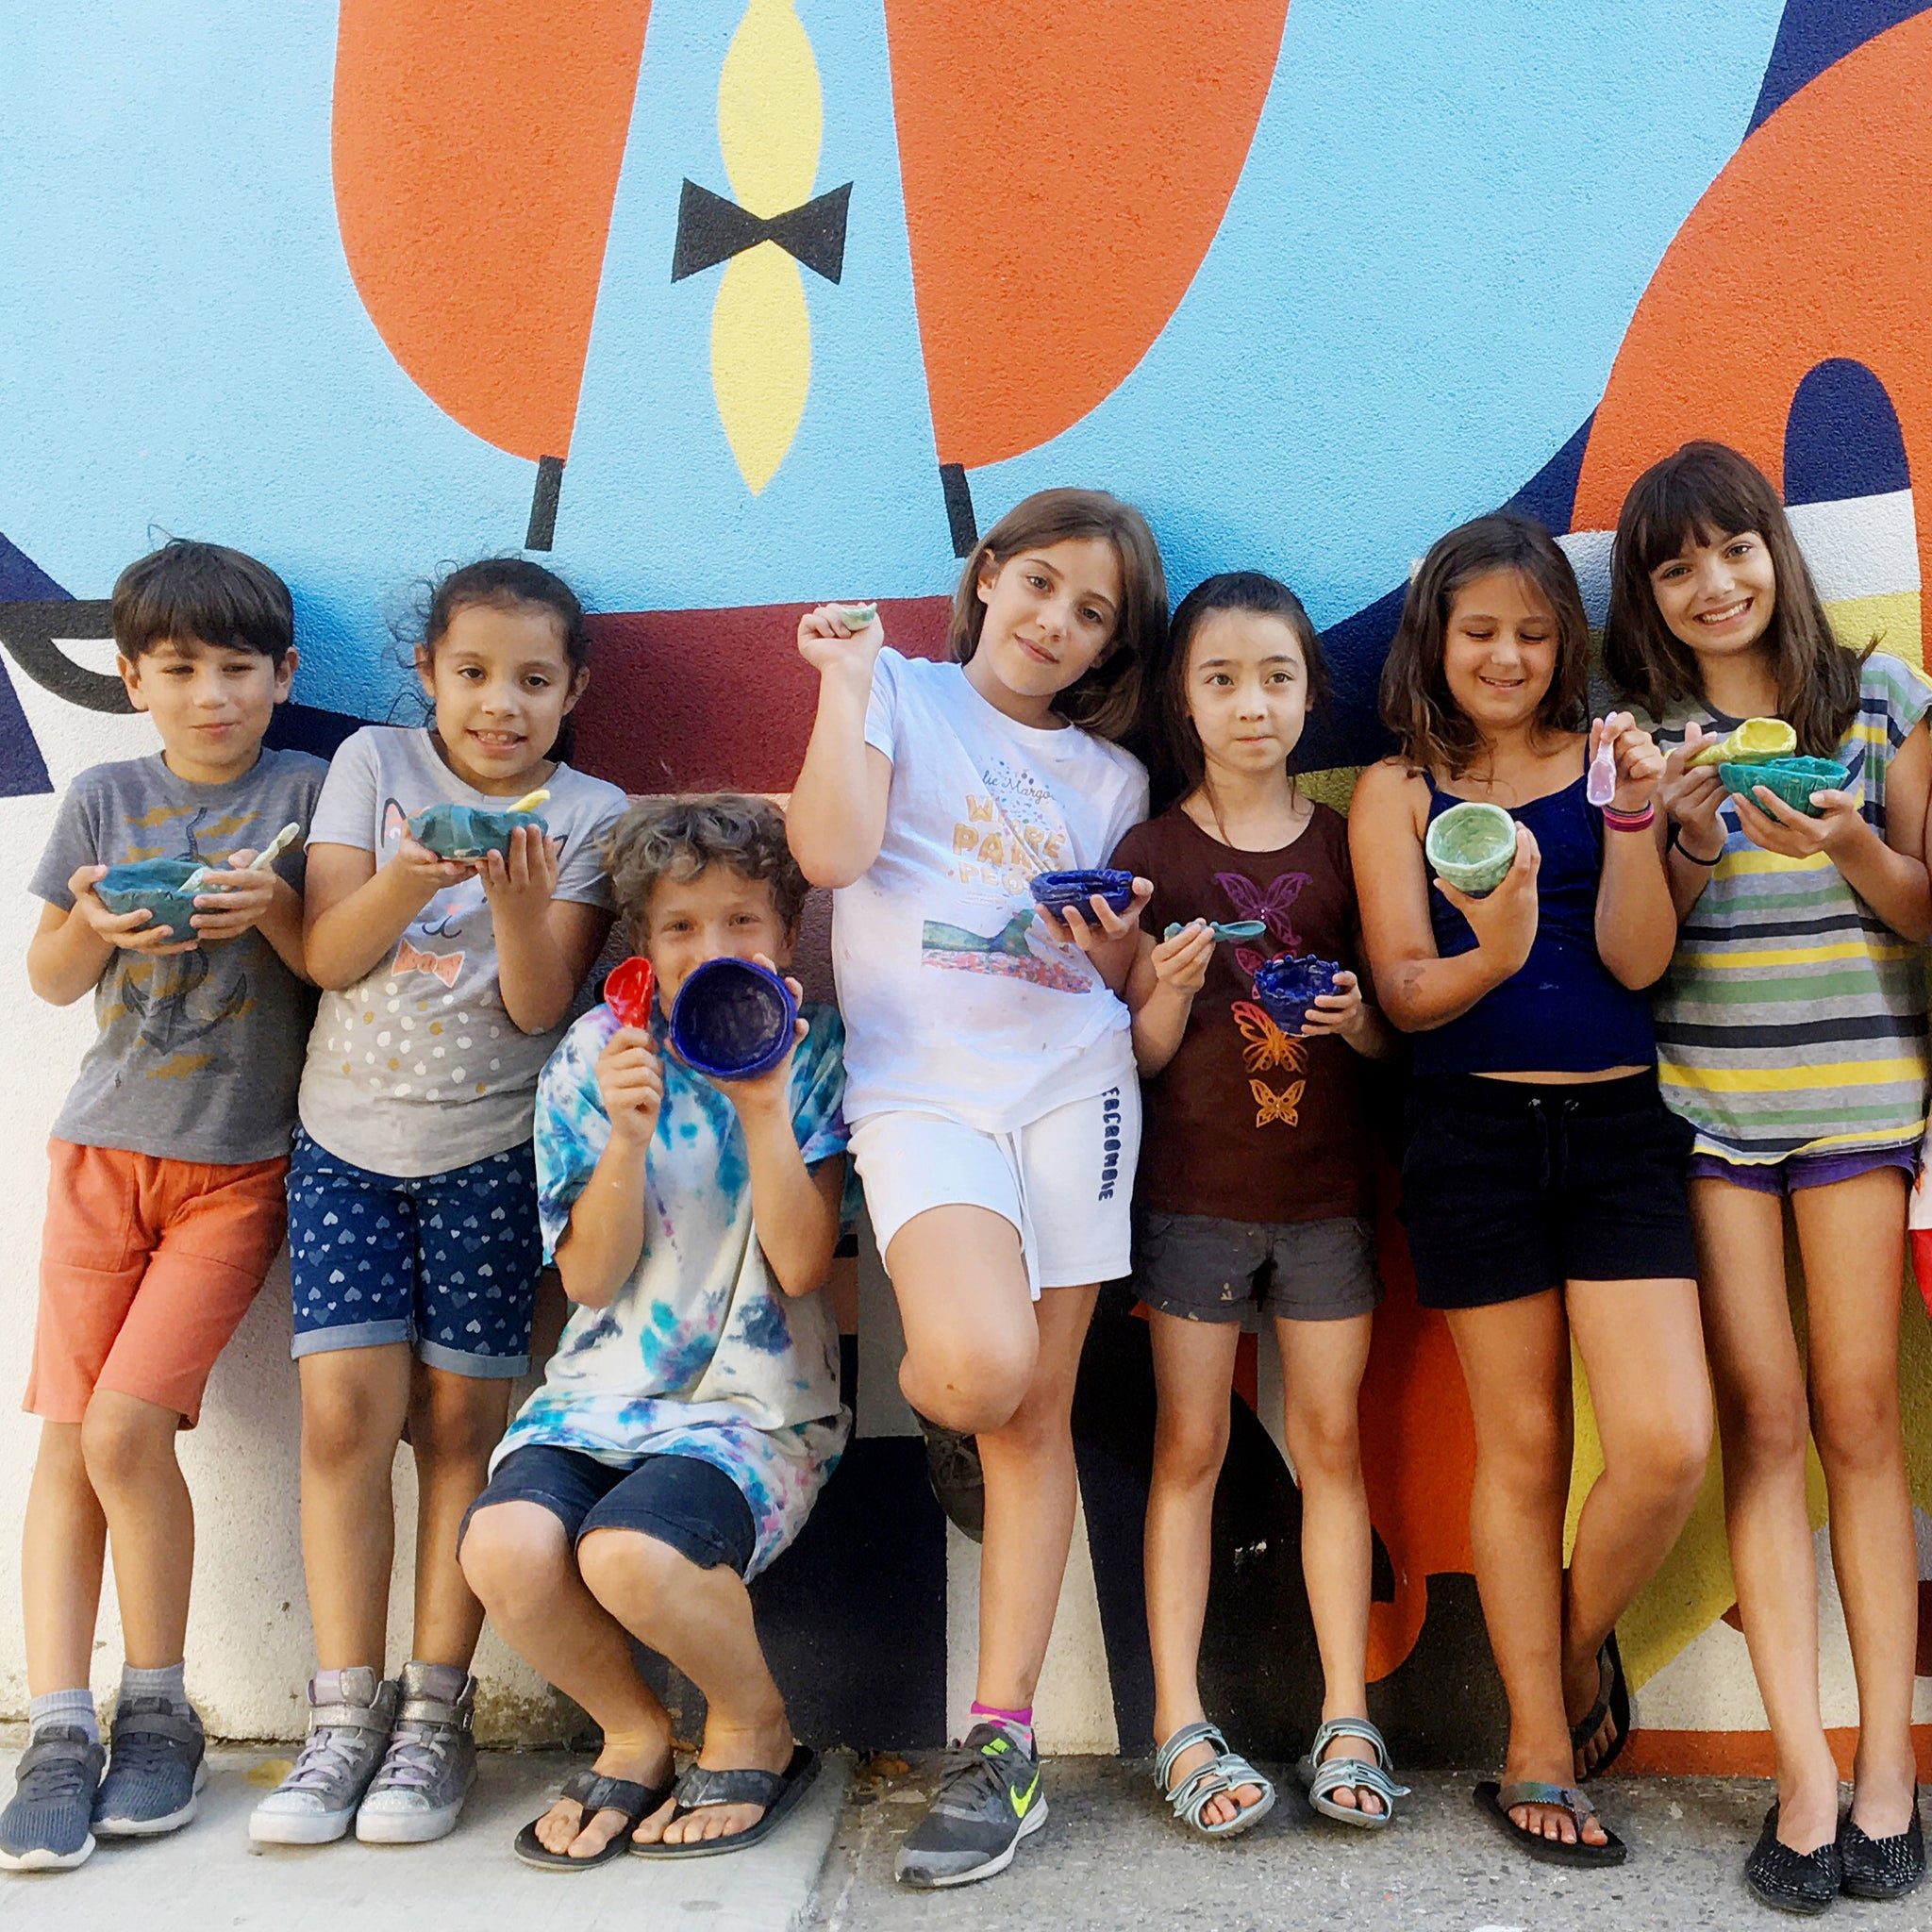 Tweens summer camp (ages 11-13)